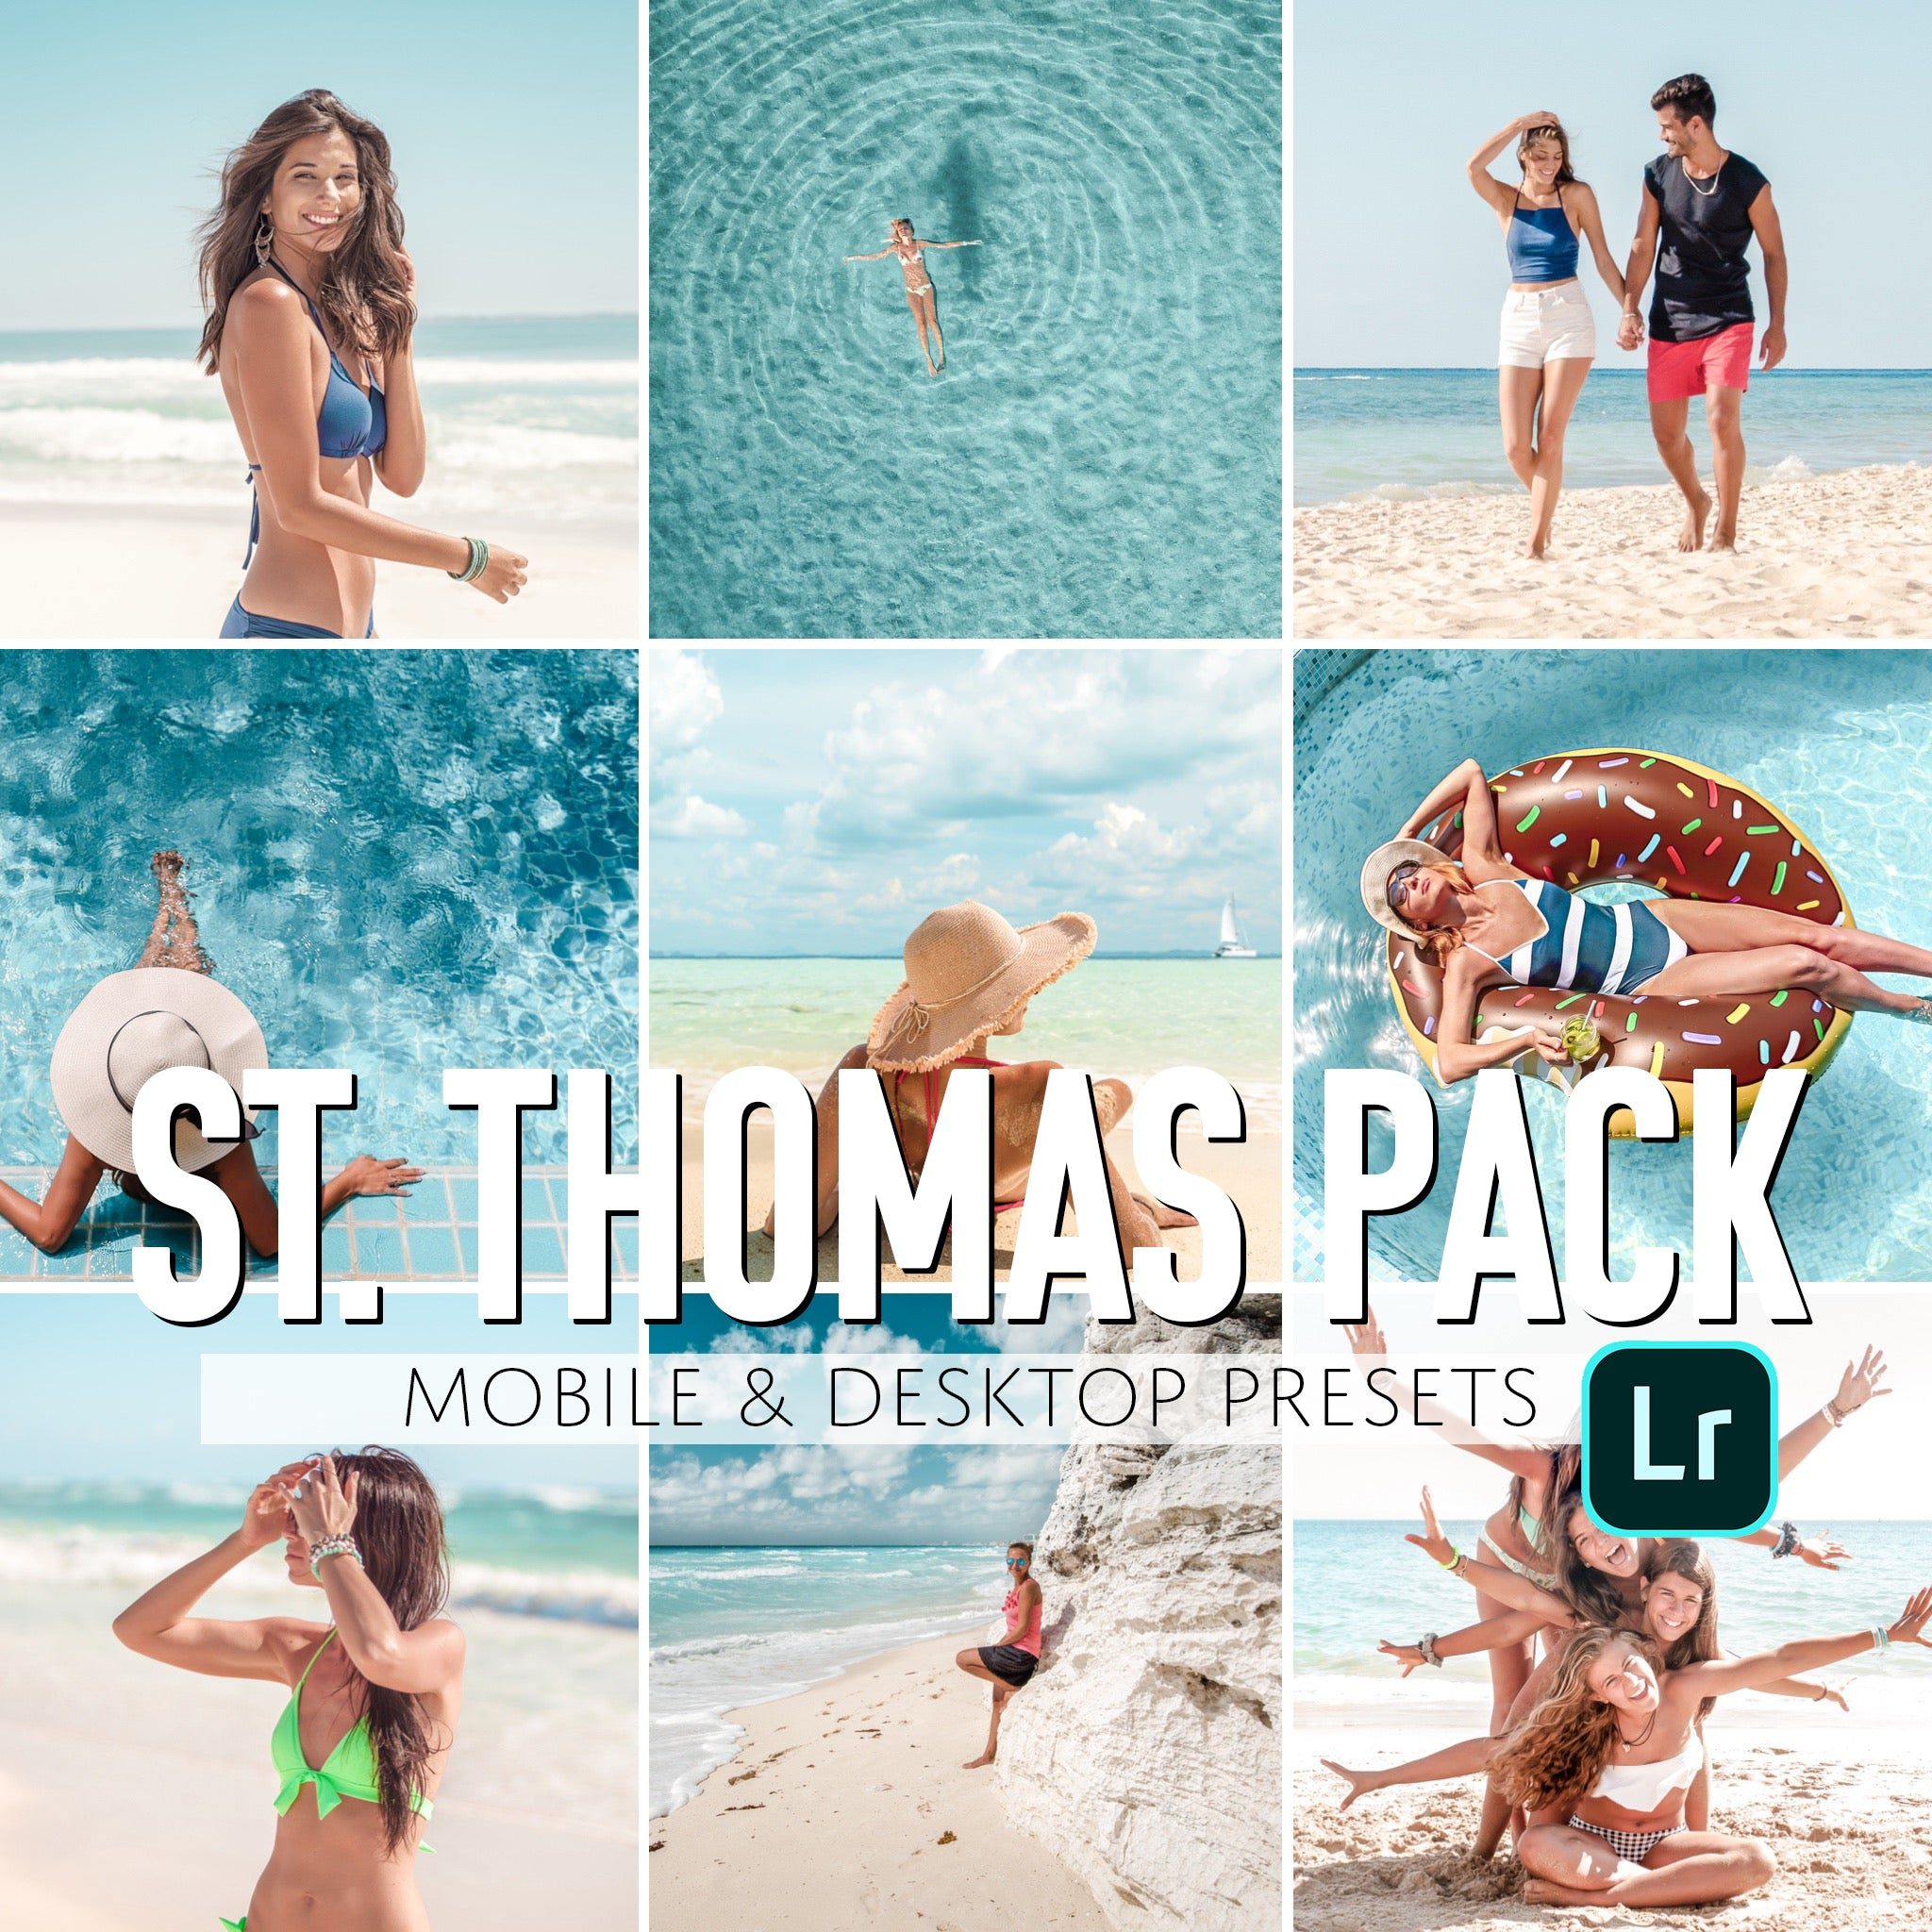 St. Thomas Mobile & Desktop Presets